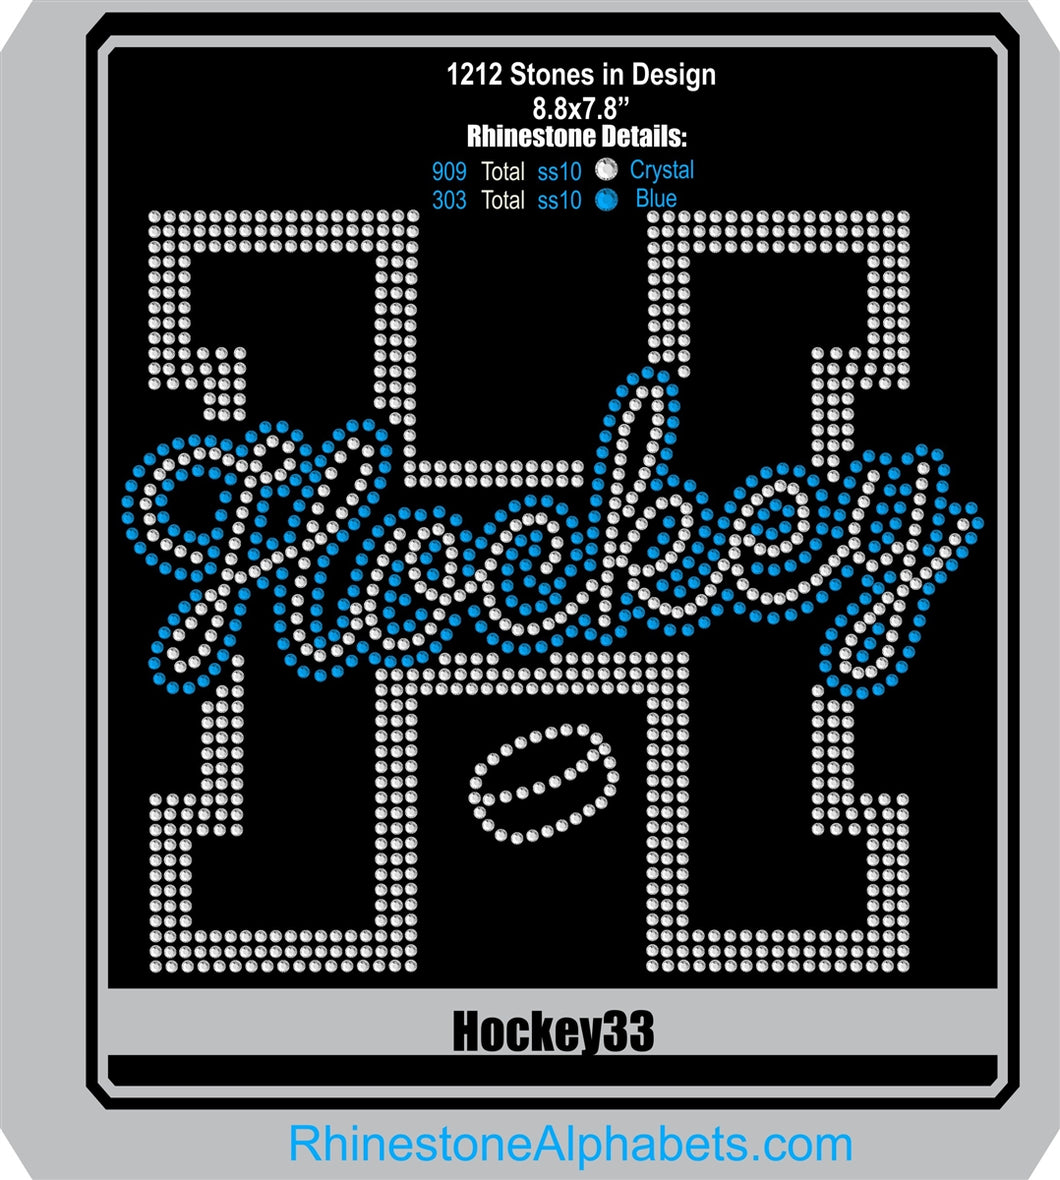 Hockey 33 ,TTF Rhinestone Fonts & Rhinestone Designs